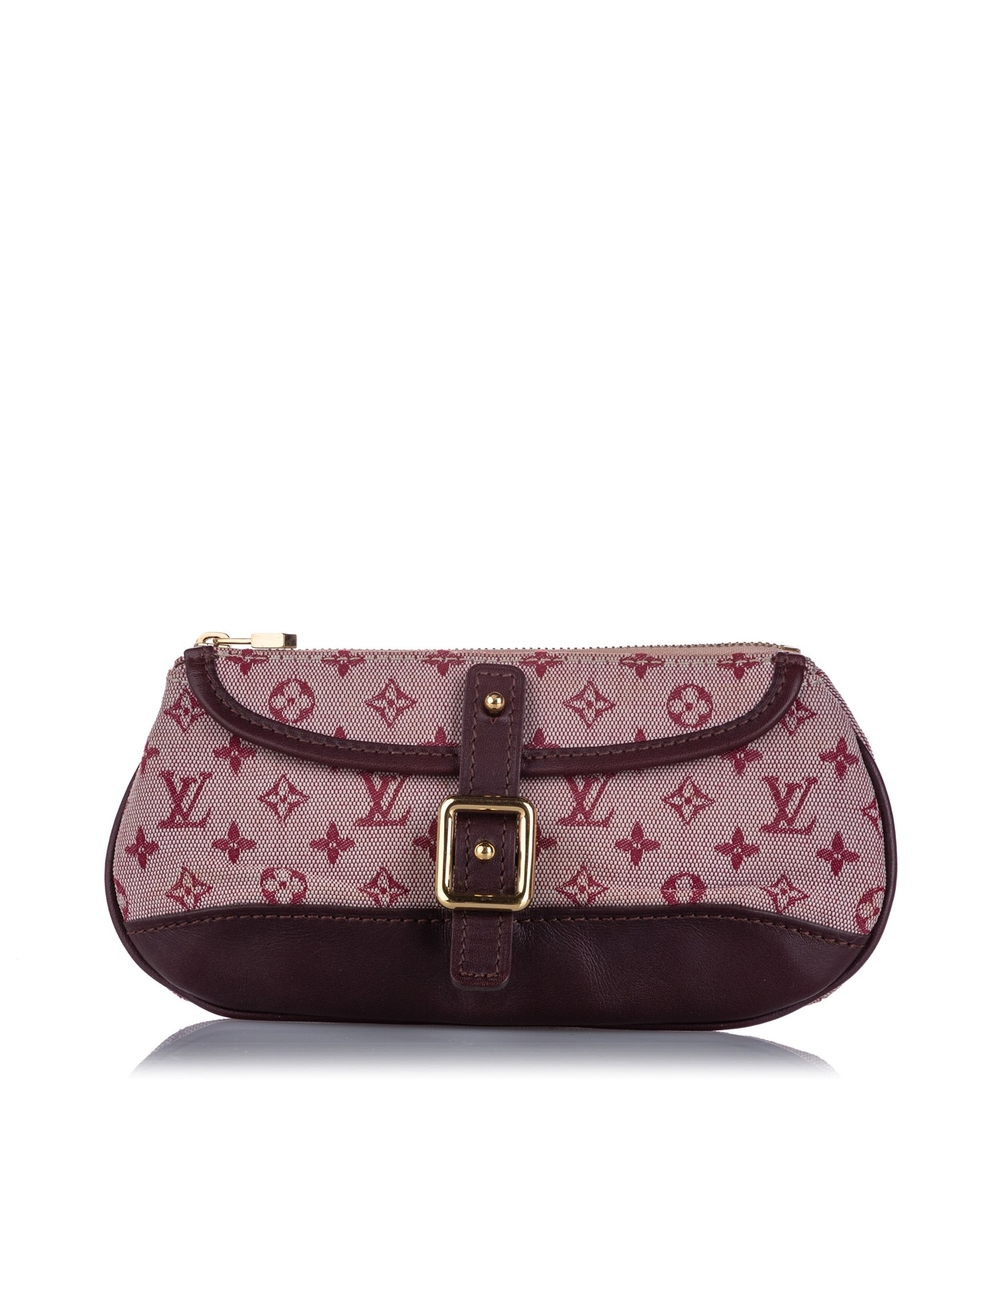 The Anne Sophie Pouch features a canvas body, a front buckle detail, and a top zip closure. Serial: